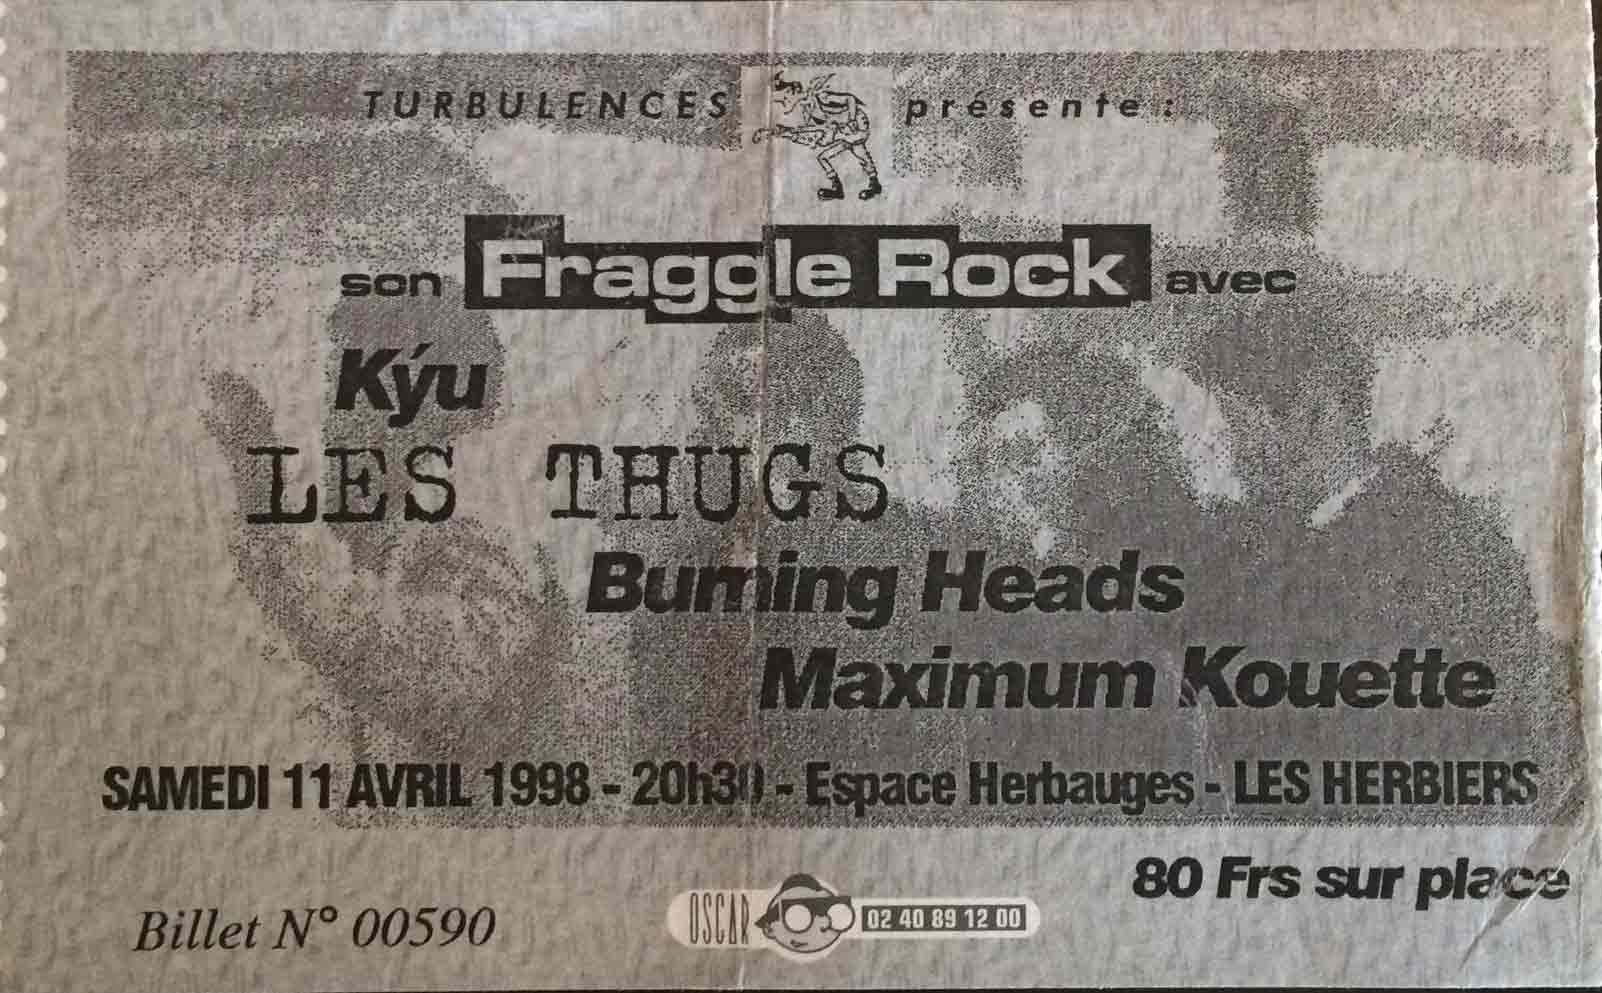 11 avril 1998 Maximum Kouette, Kyu, Burning Heads, les Thugs aux Herbiers